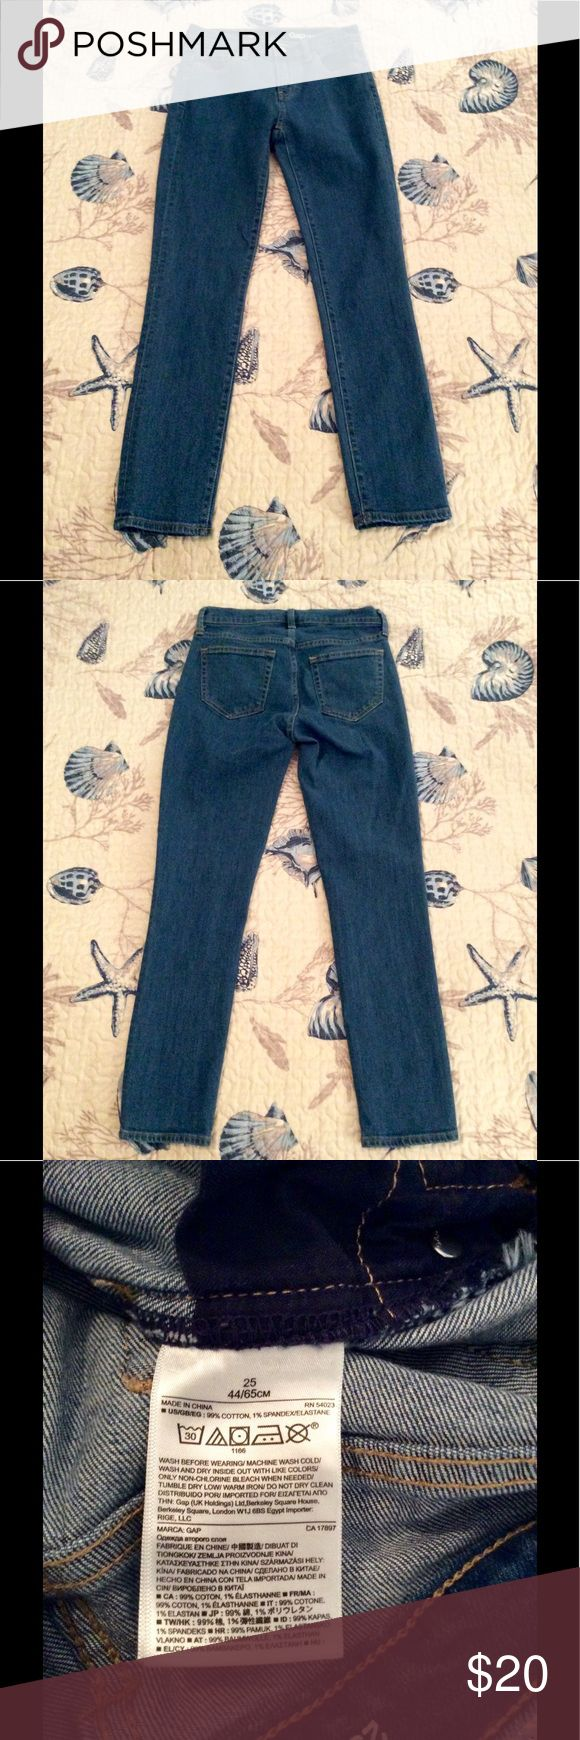 "EUC Gap Girlfriend Blowout Skinny Jeans Excellent condition (maybe even NWOT, I can't remember) - no marks, rips, holes, stains, etc. Features 3 real front pockets & 2 back pockets. Shade is Medium Indigo. Measures 36 inches long, 14"" waist, 9"" inseam. From Spring 2016. No trades. Comes from smoke & pet free home. Don't hesitate to ask any questions! GAP Jeans Skinny"